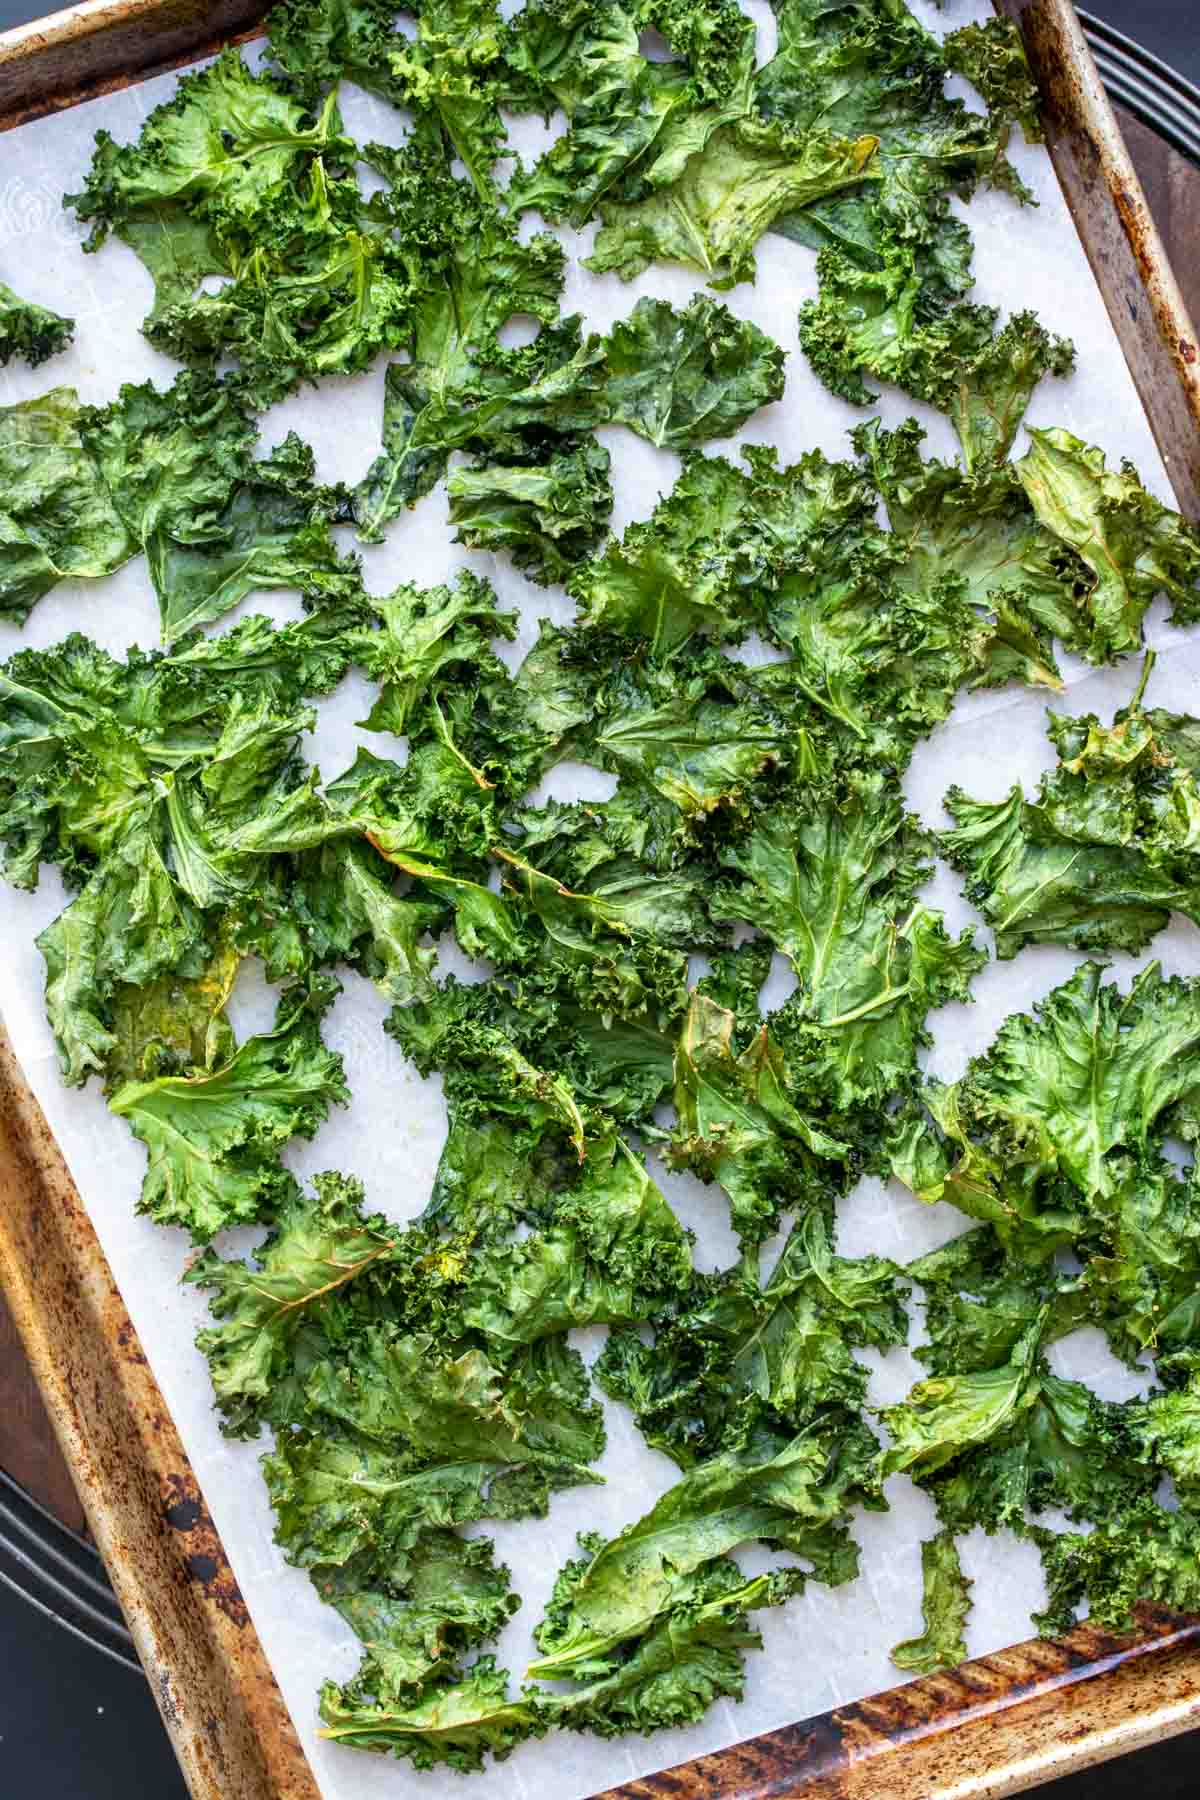 Baked kale chips spread on a parchment lined baking sheet